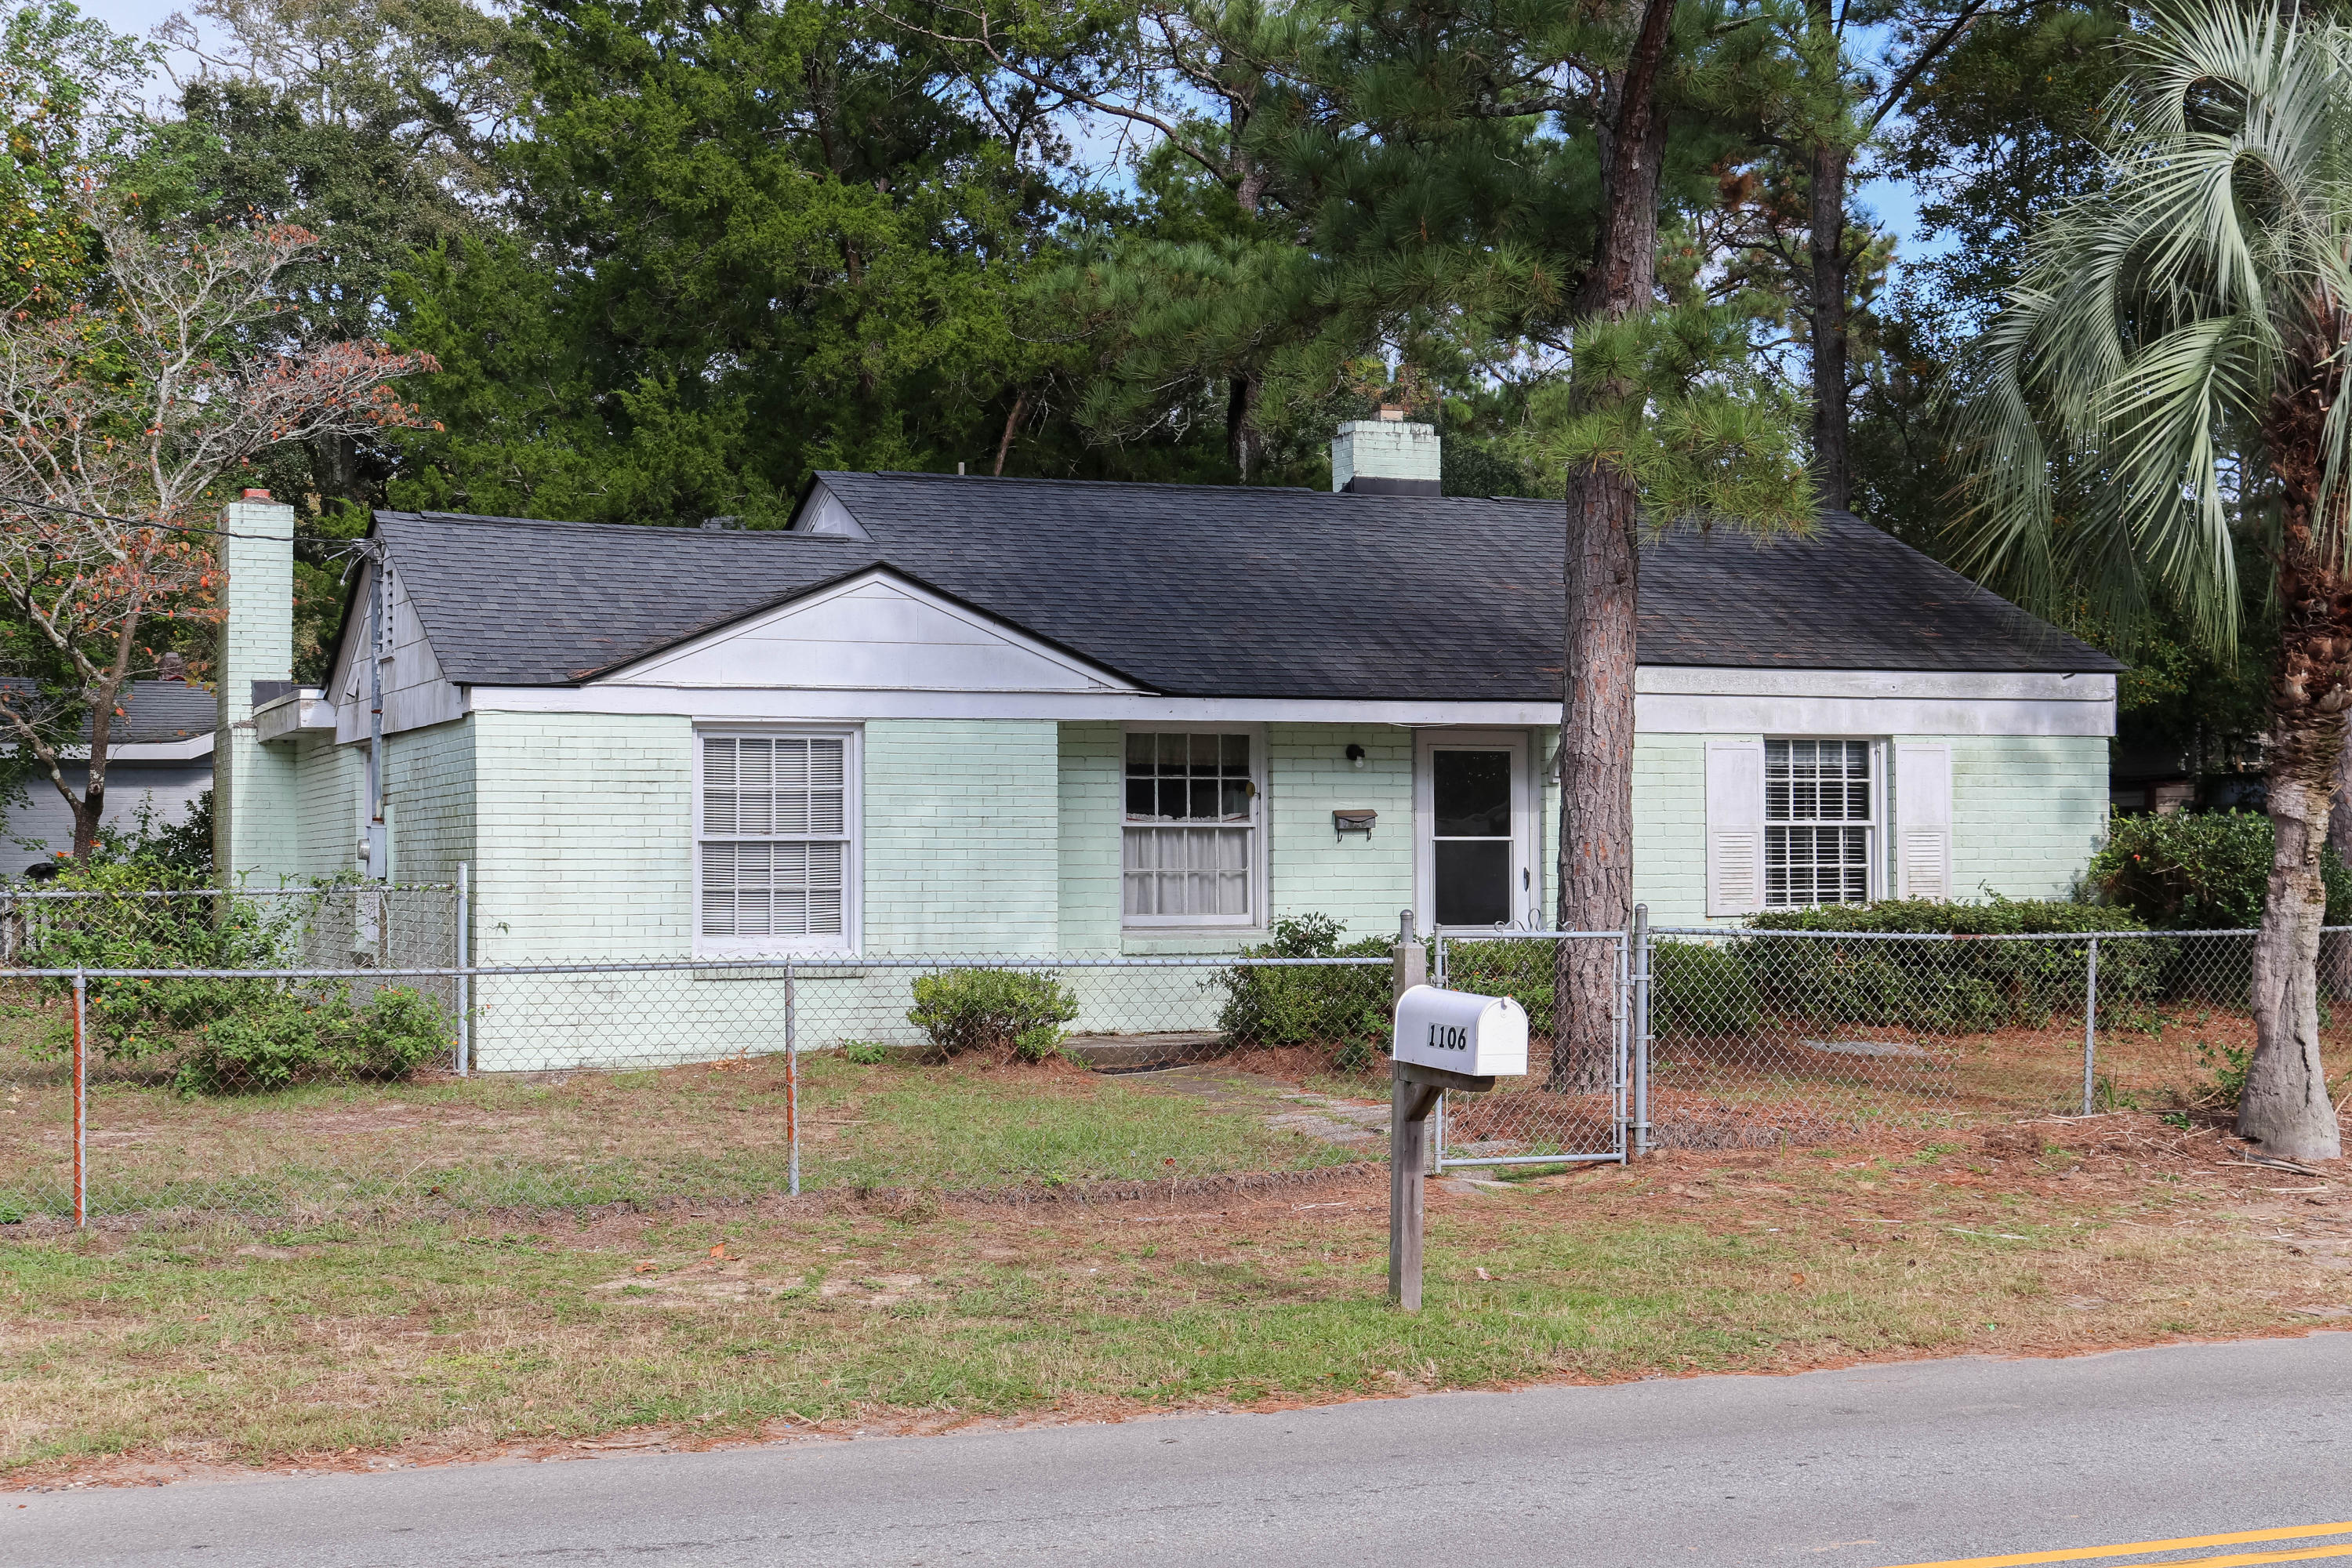 Old Mt Pleasant Homes For Sale - 1106 Simmons, Mount Pleasant, SC - 12